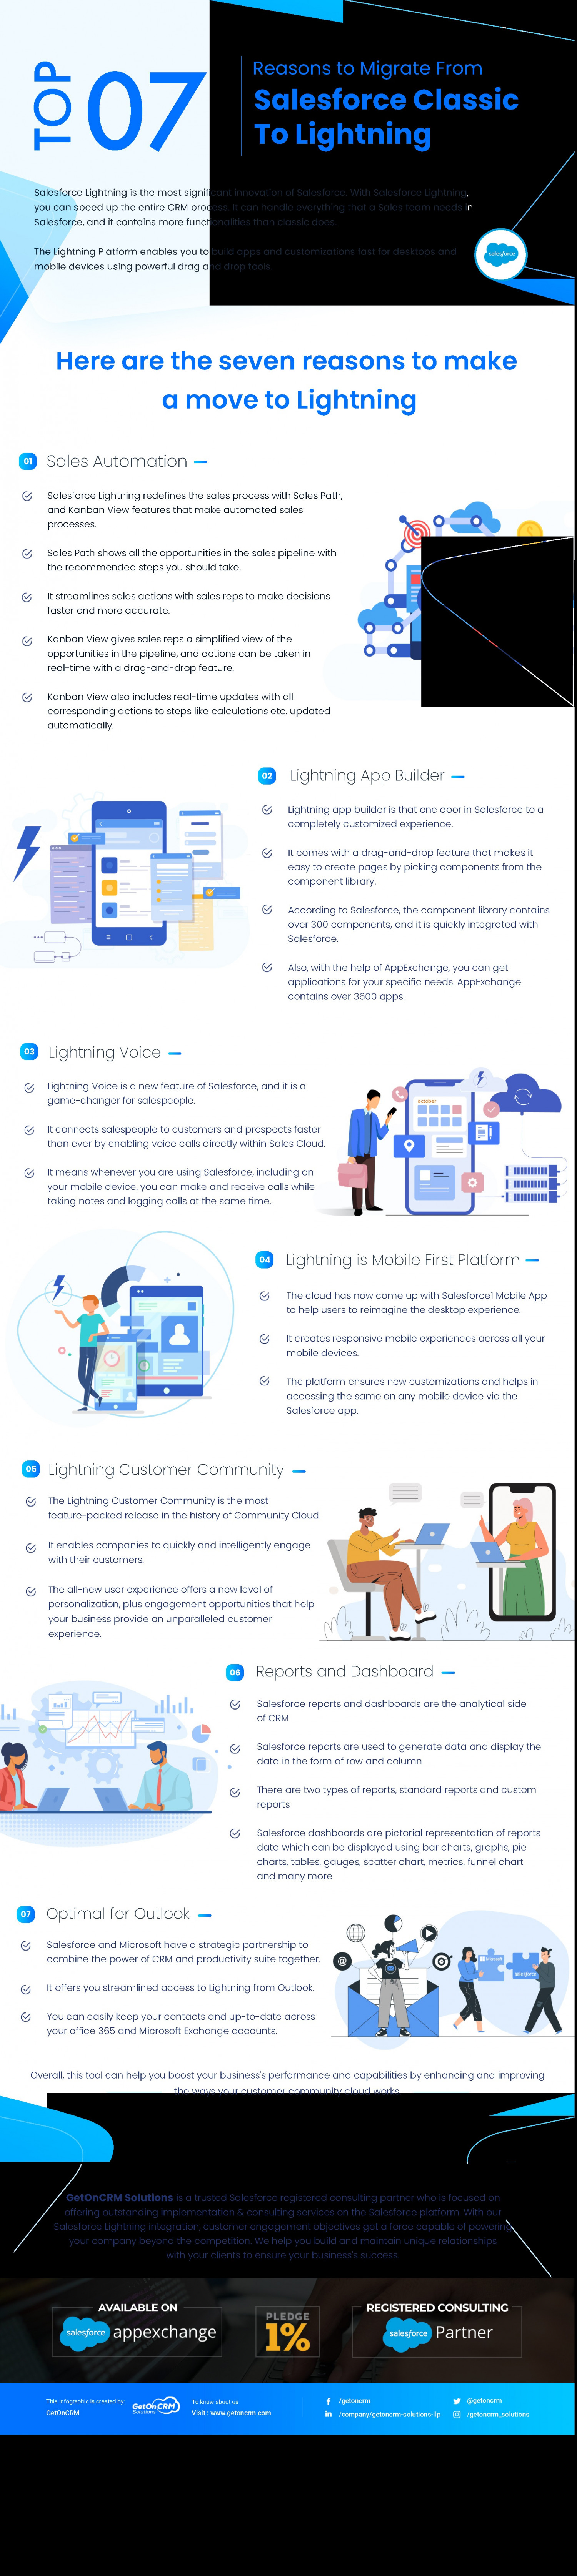 Top 7 Reasons To Migrate From Salesforce Classic To Lightning Infographic